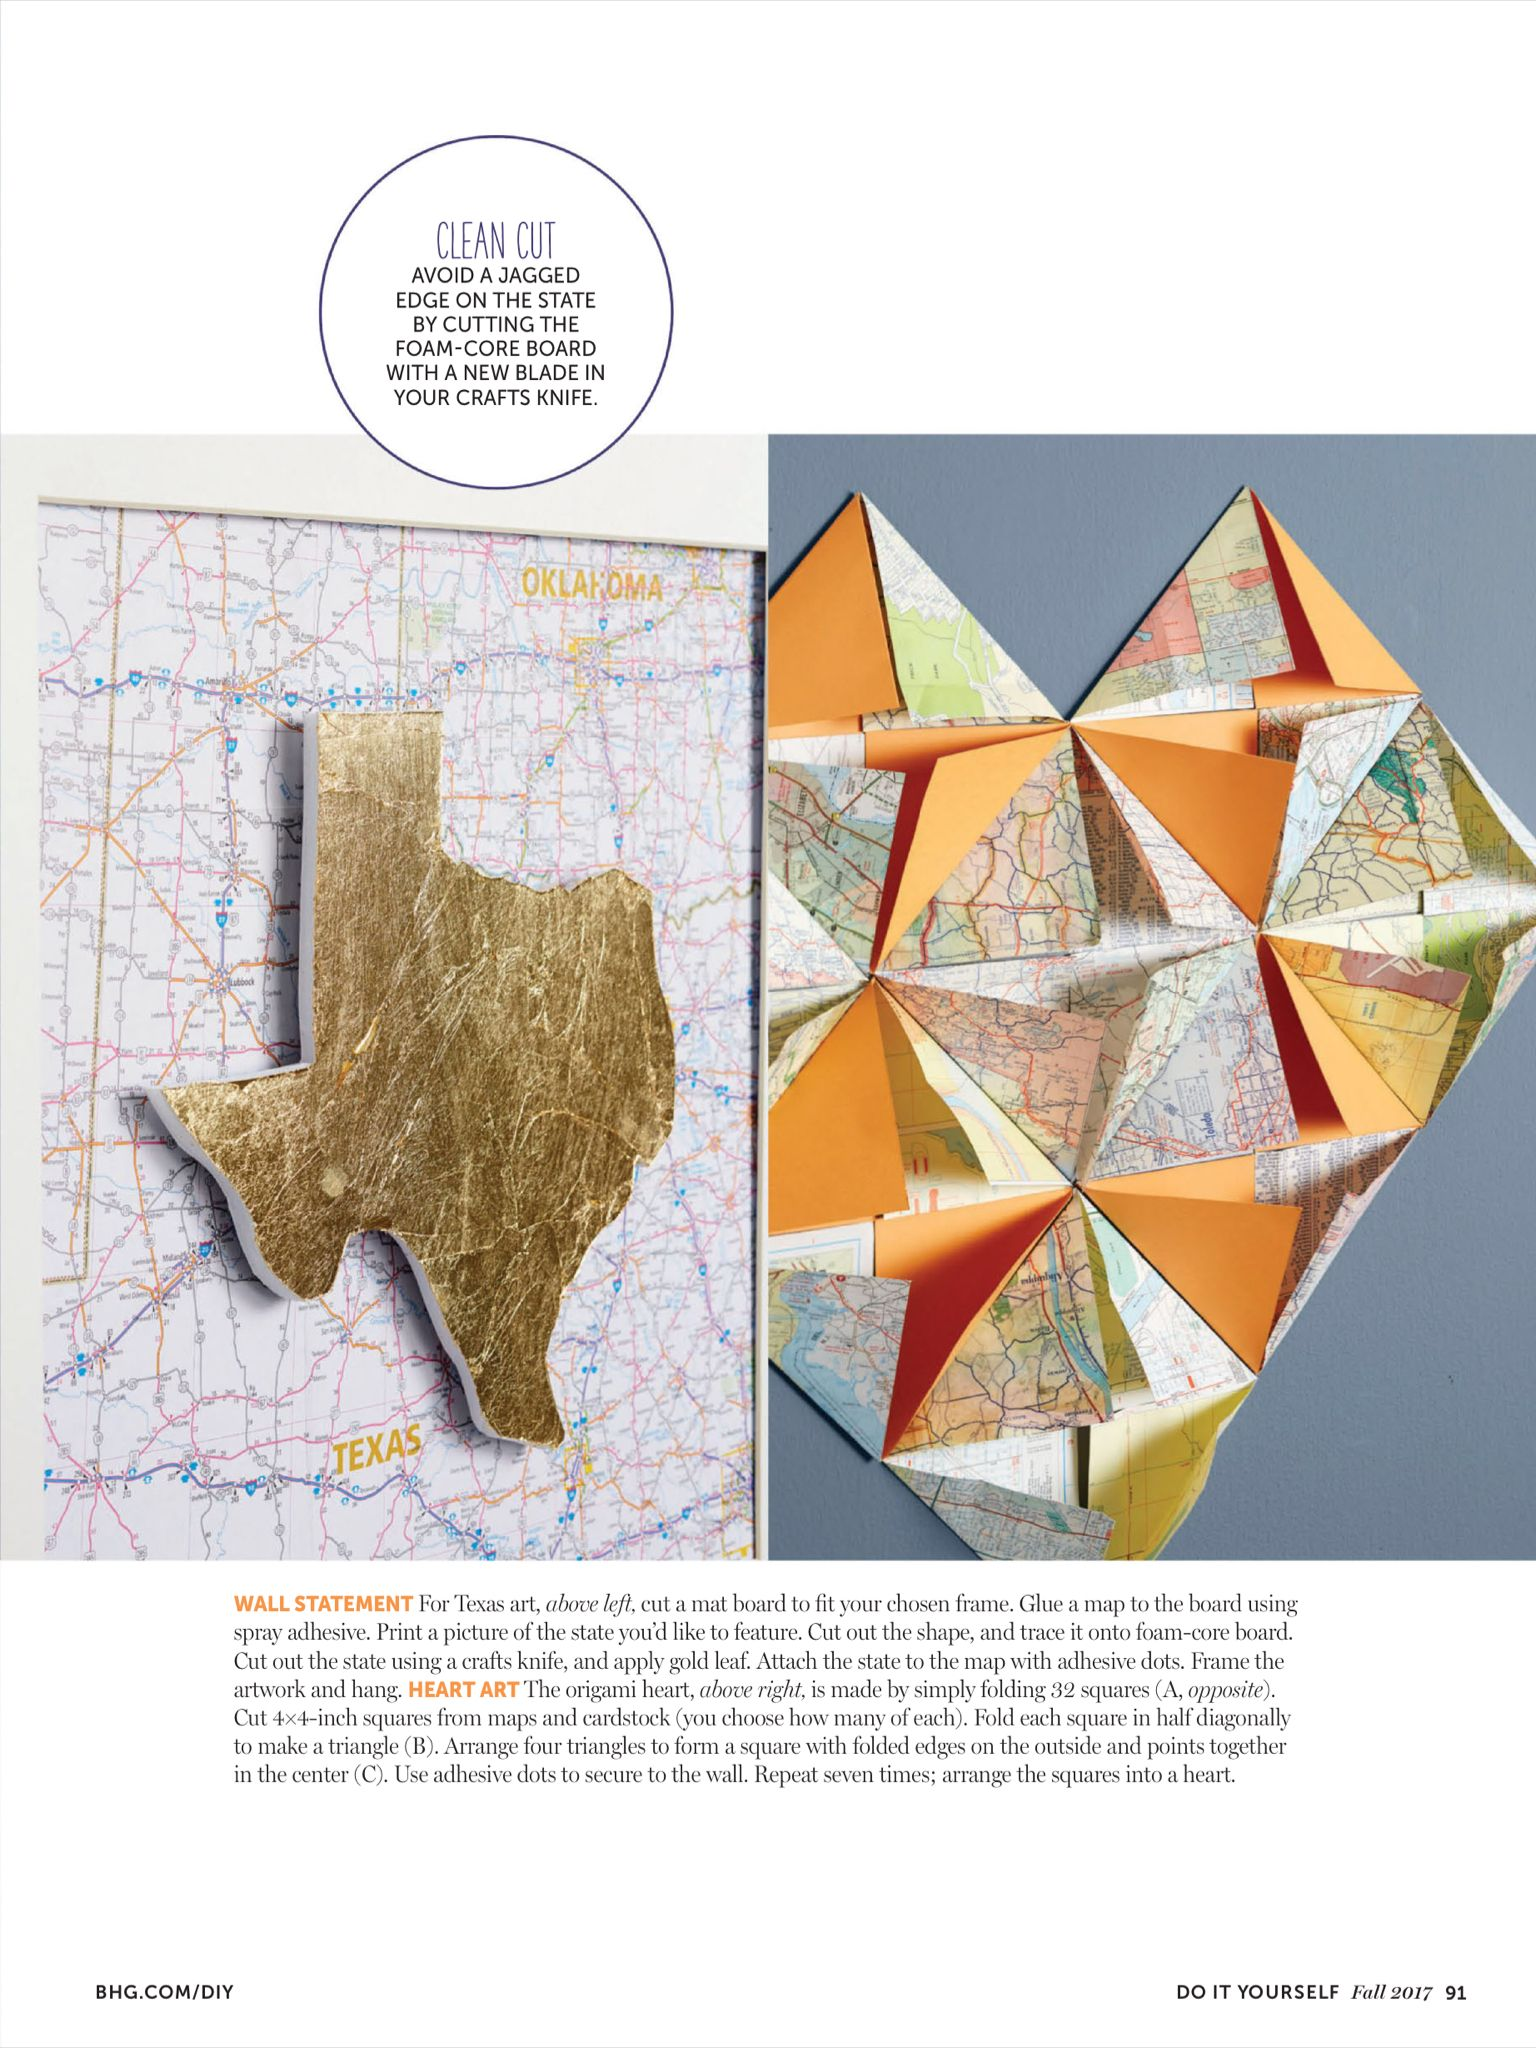 Map it out from do it yourself magazine fall 2017 read it on the map it out from do it yourself magazine fall read it on the texture app unlimited access to top magazines solutioingenieria Gallery